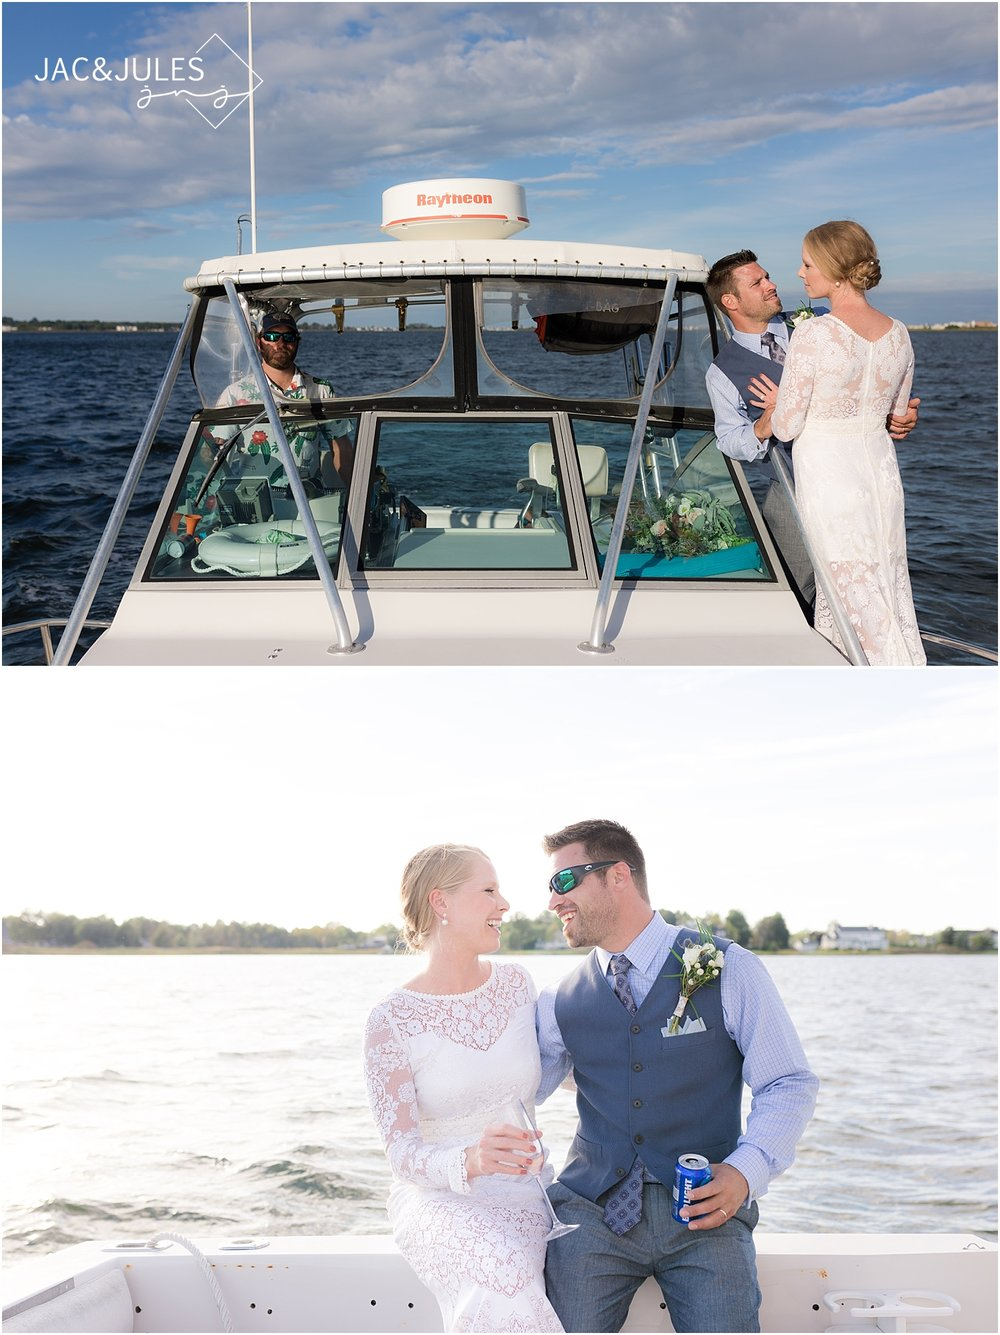 fun wedding photos on a boat in new jersey